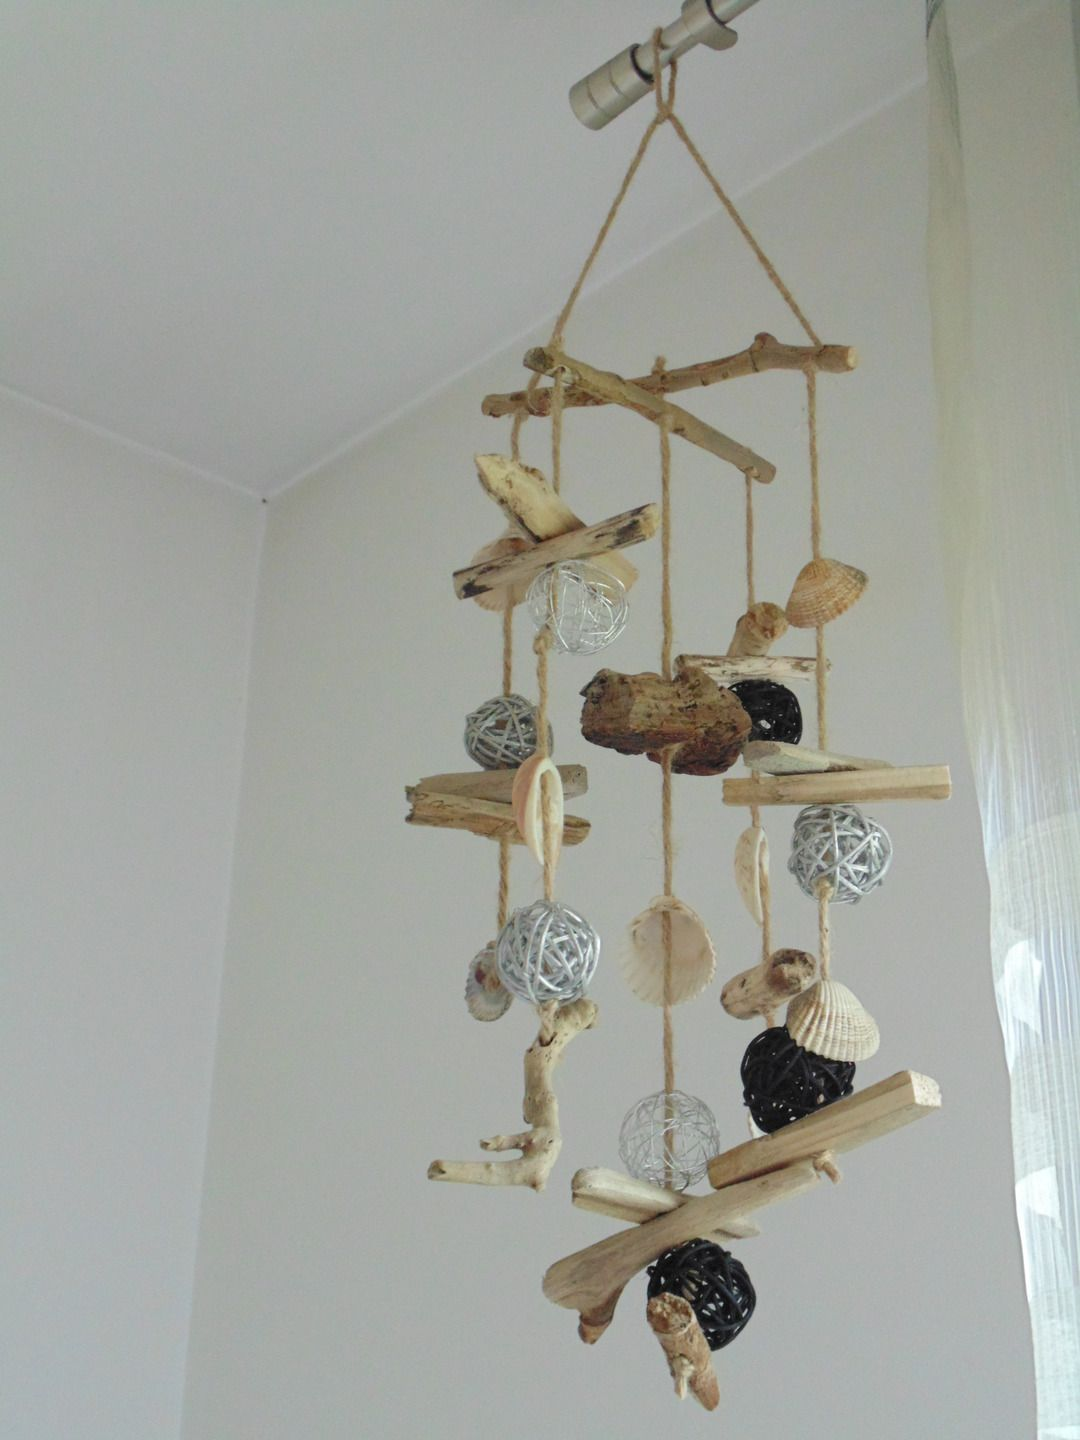 Mobile suspension d co en bois flott coquillages et for Mobile en bois flotte